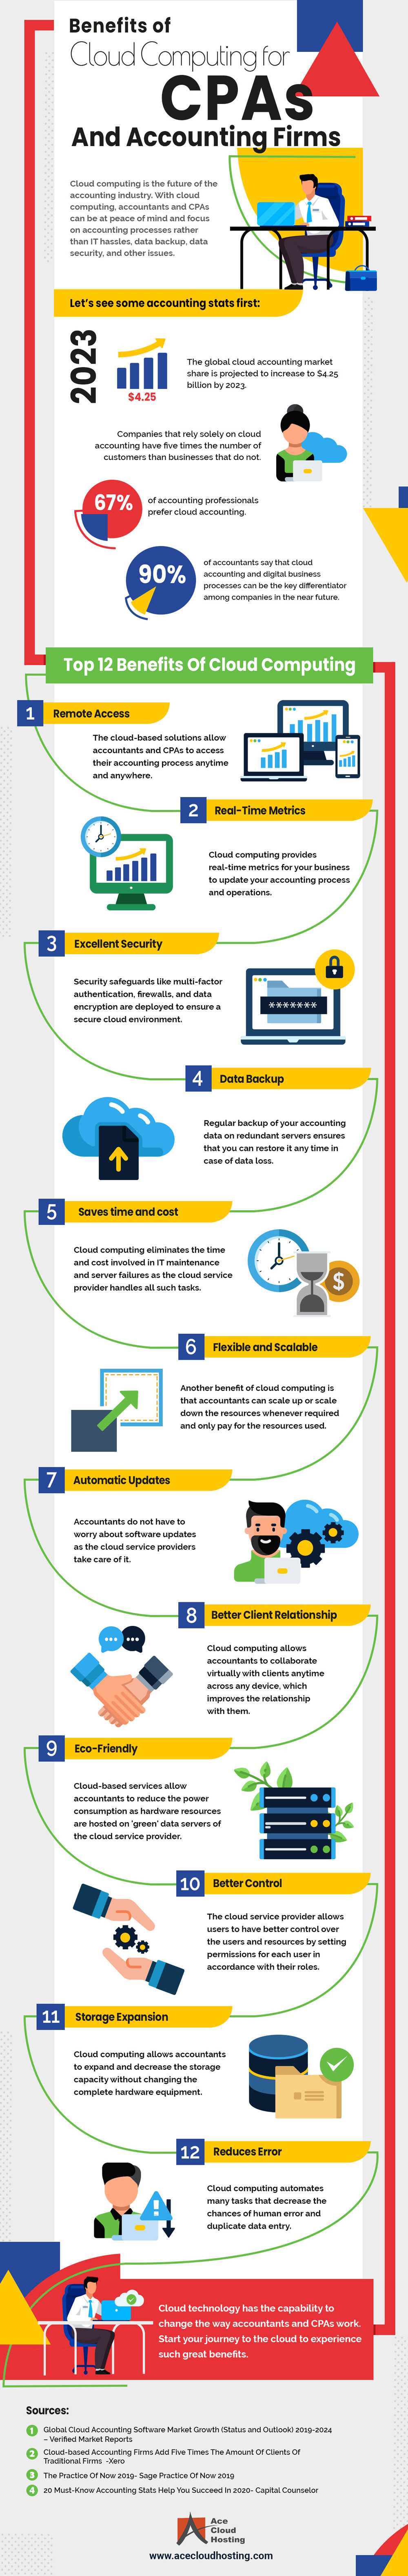 Benefits of Cloud Computing for CPAs and Accountants Infographic